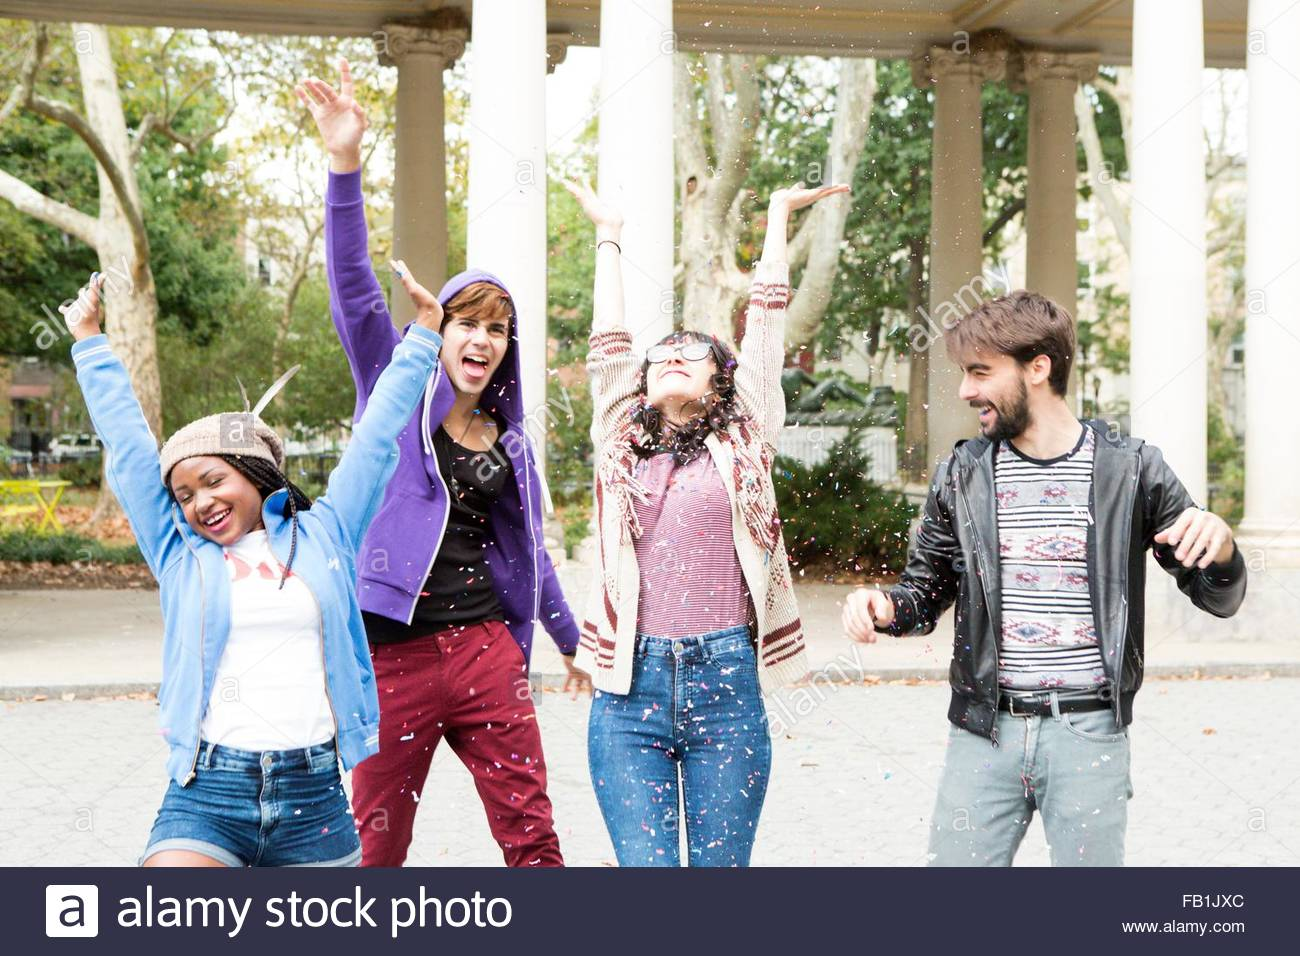 Four young adult friends throwing confetti in park, Brooklyn, New York, USA - Stock Image